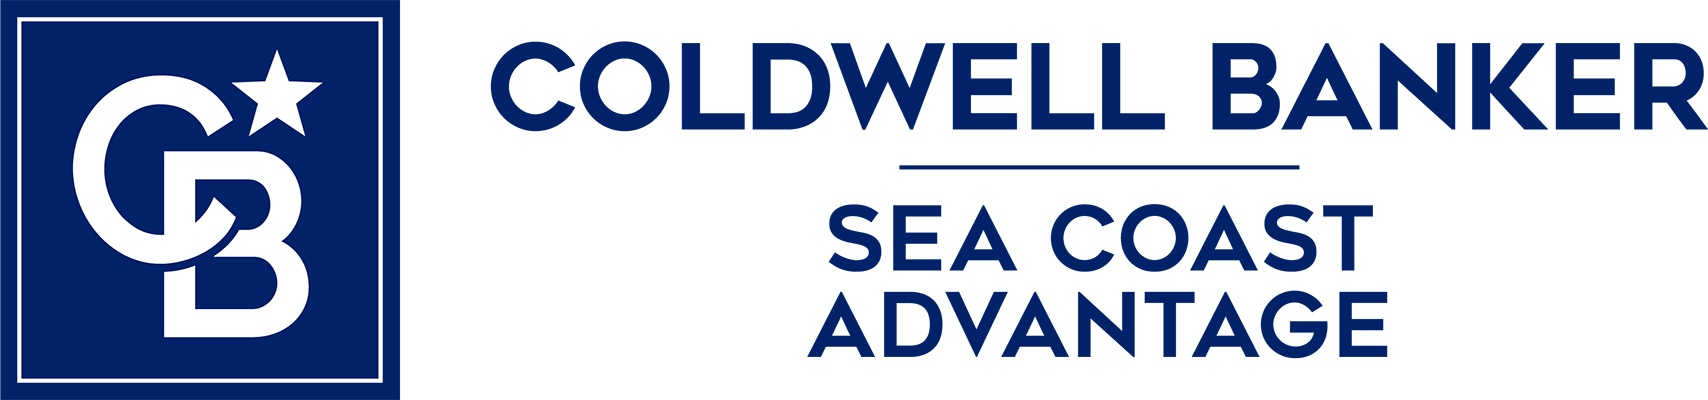 Lynne Kennedy - Coldwell Banker Sea Coast Advantage Realty